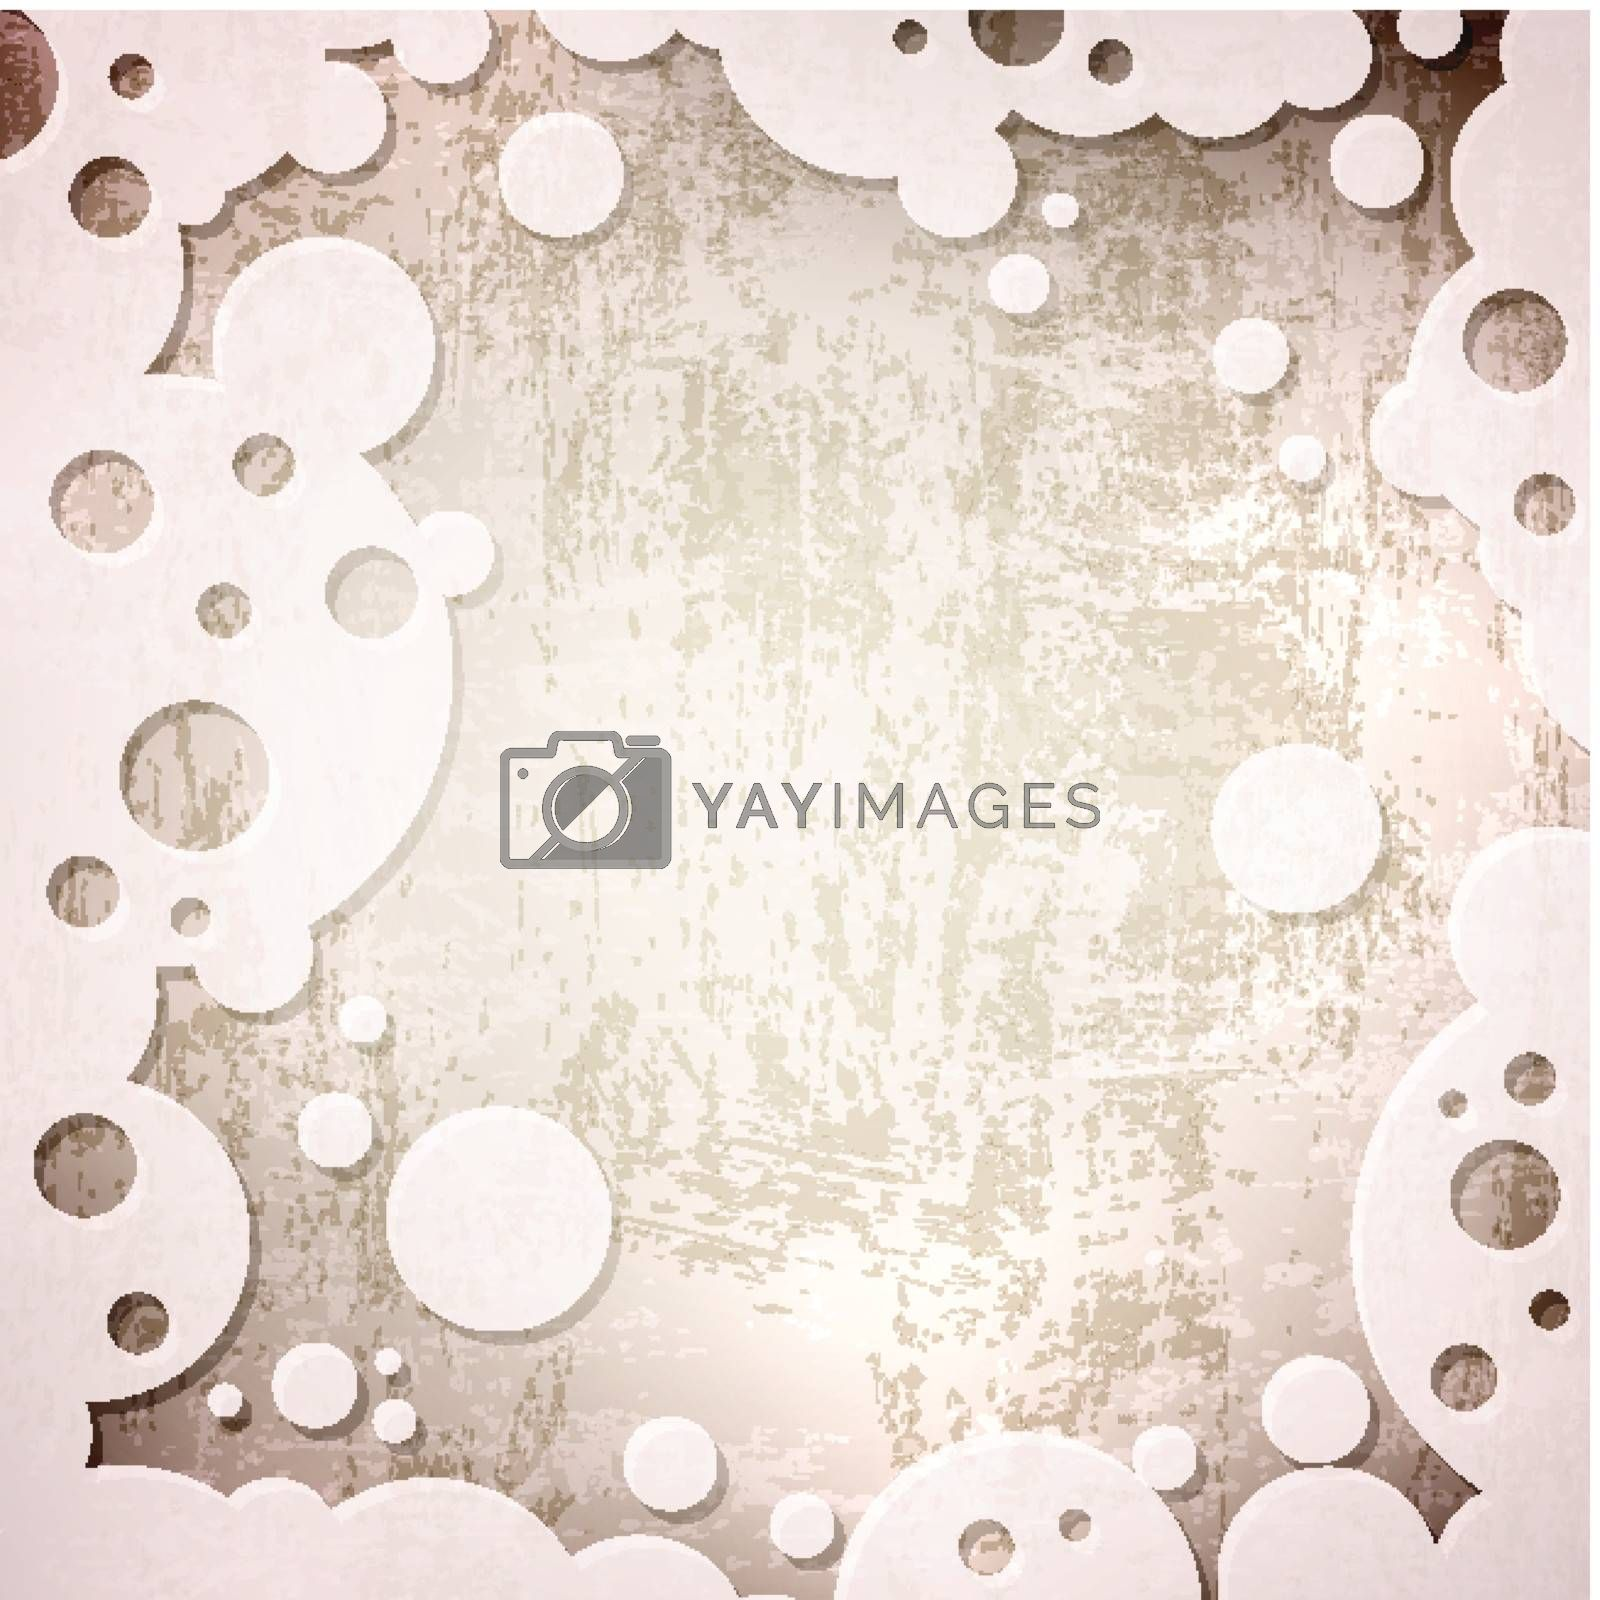 abstract vintage grunge background in abstract frame with round shapes